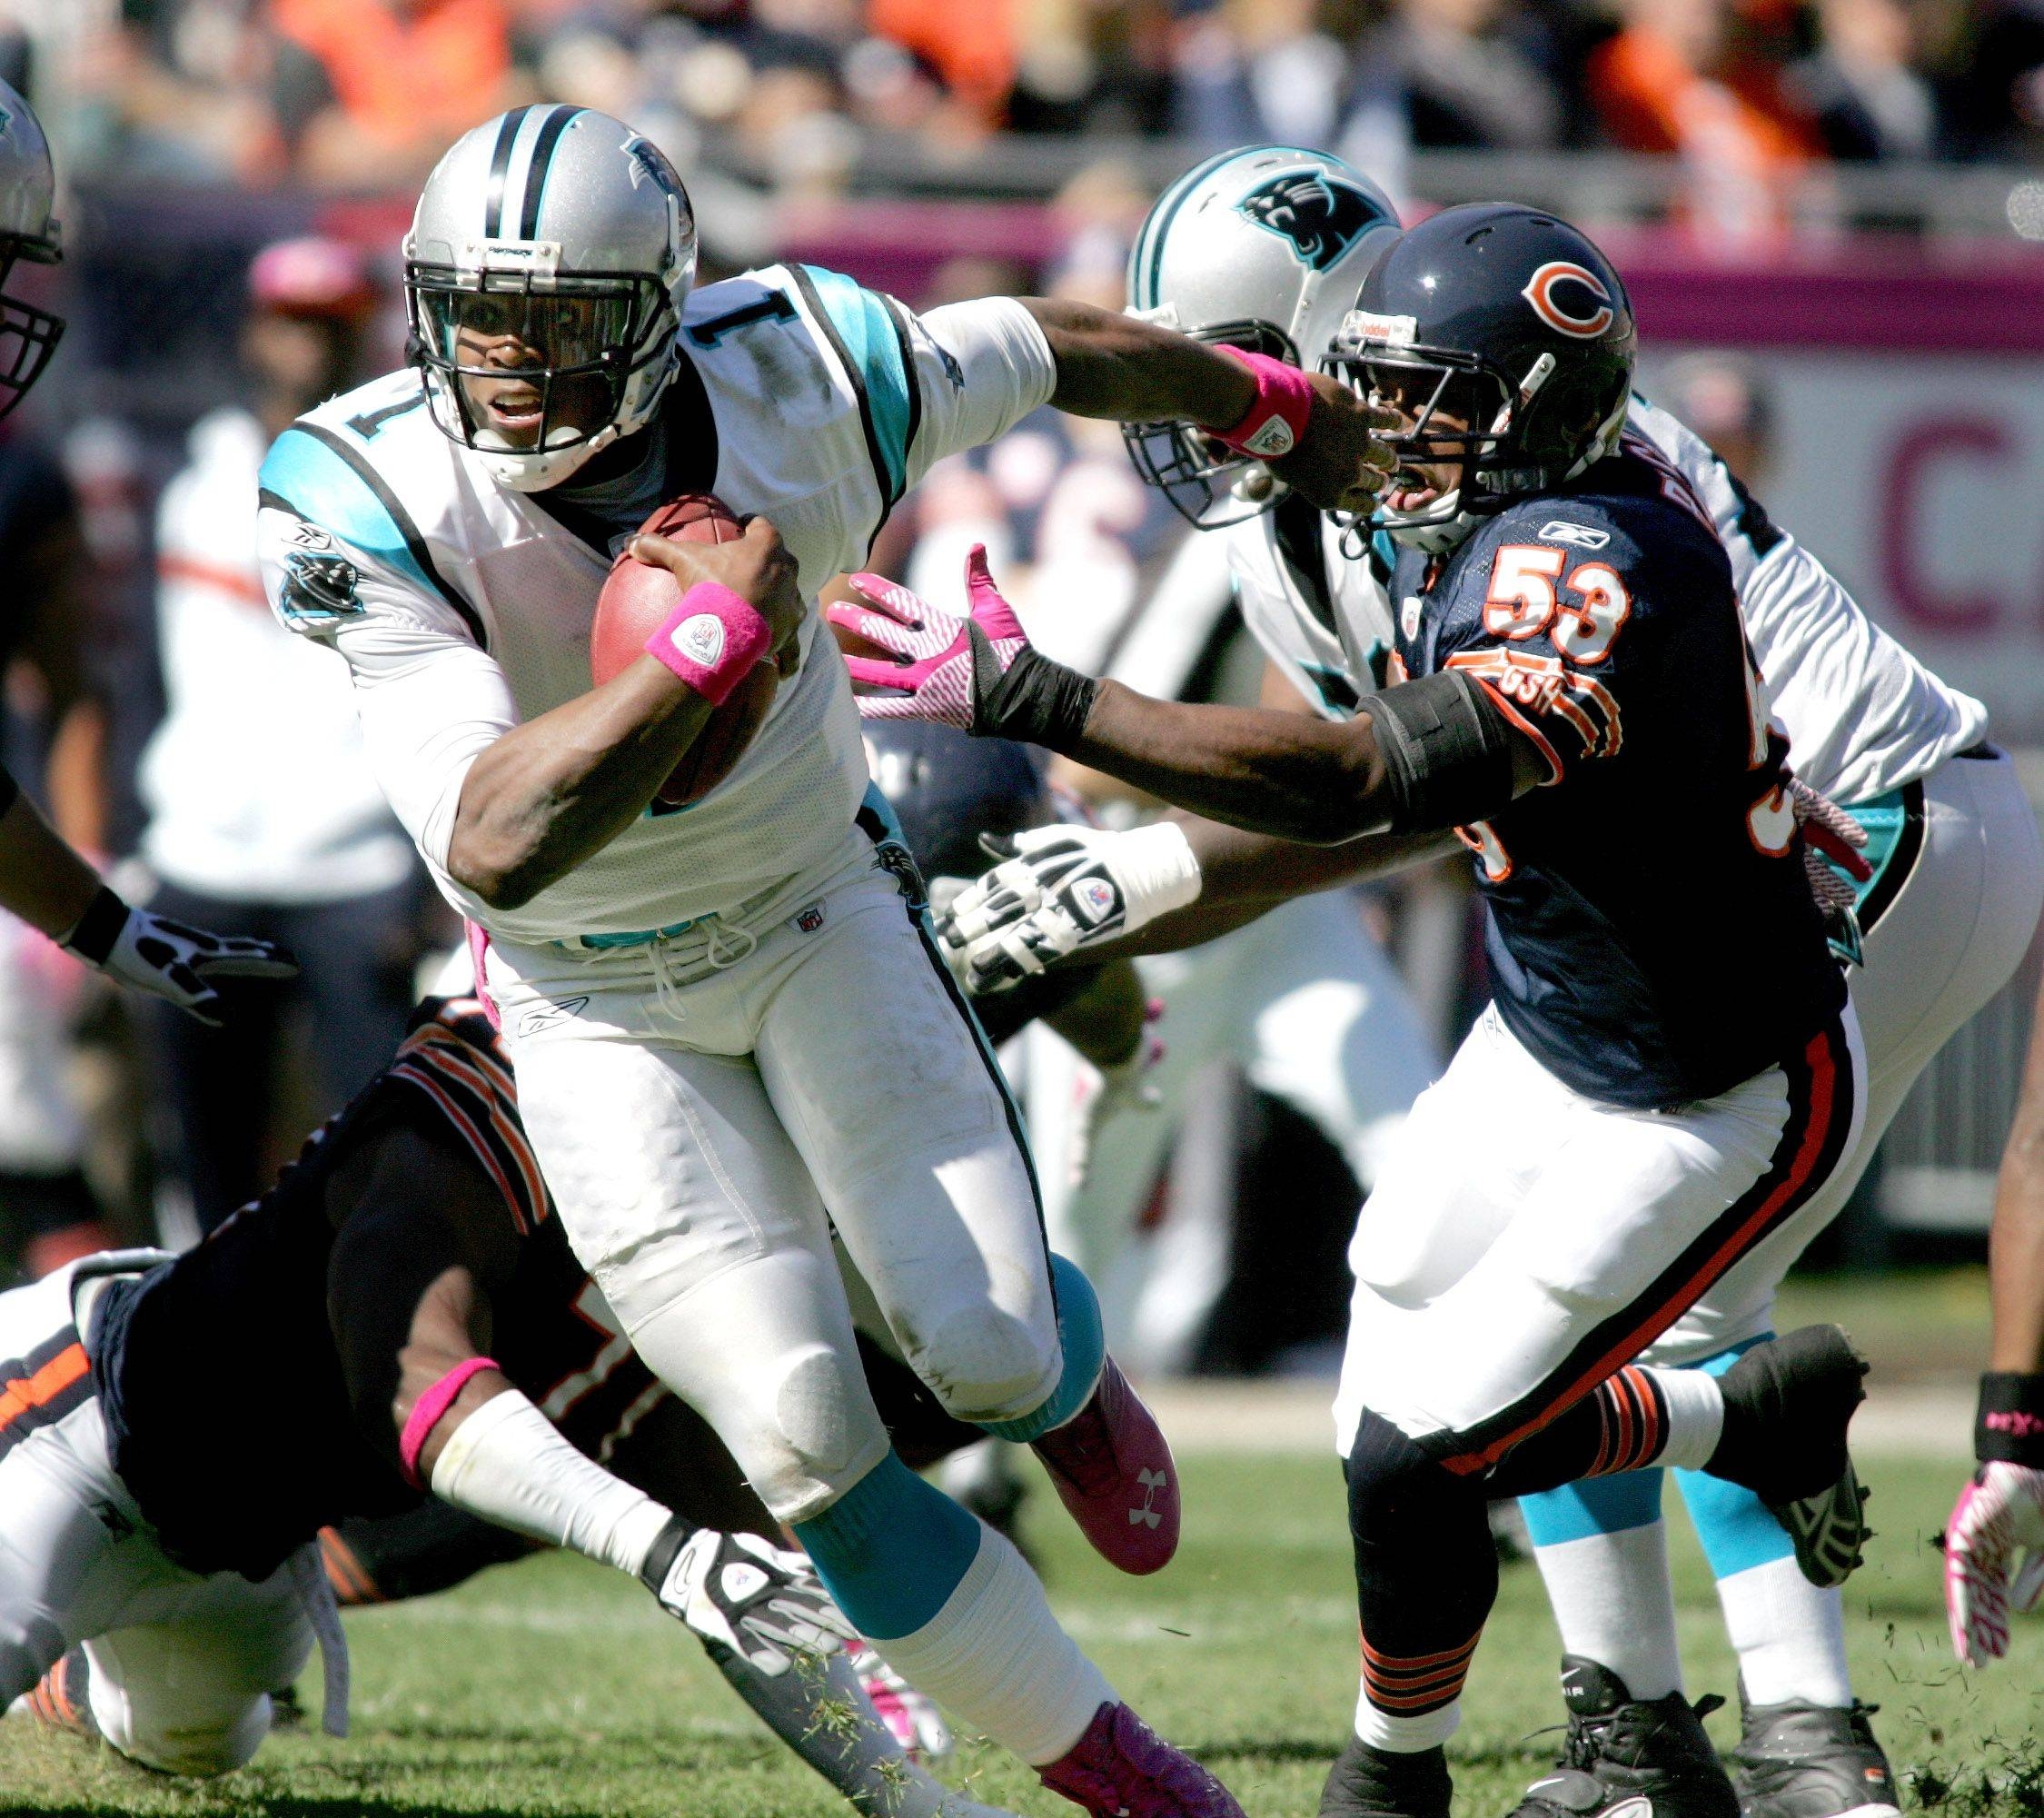 Carolina Panthers quarterback Cam Newton fends off Nick Roach, right, of the Chicago Bears at Soldier Field.